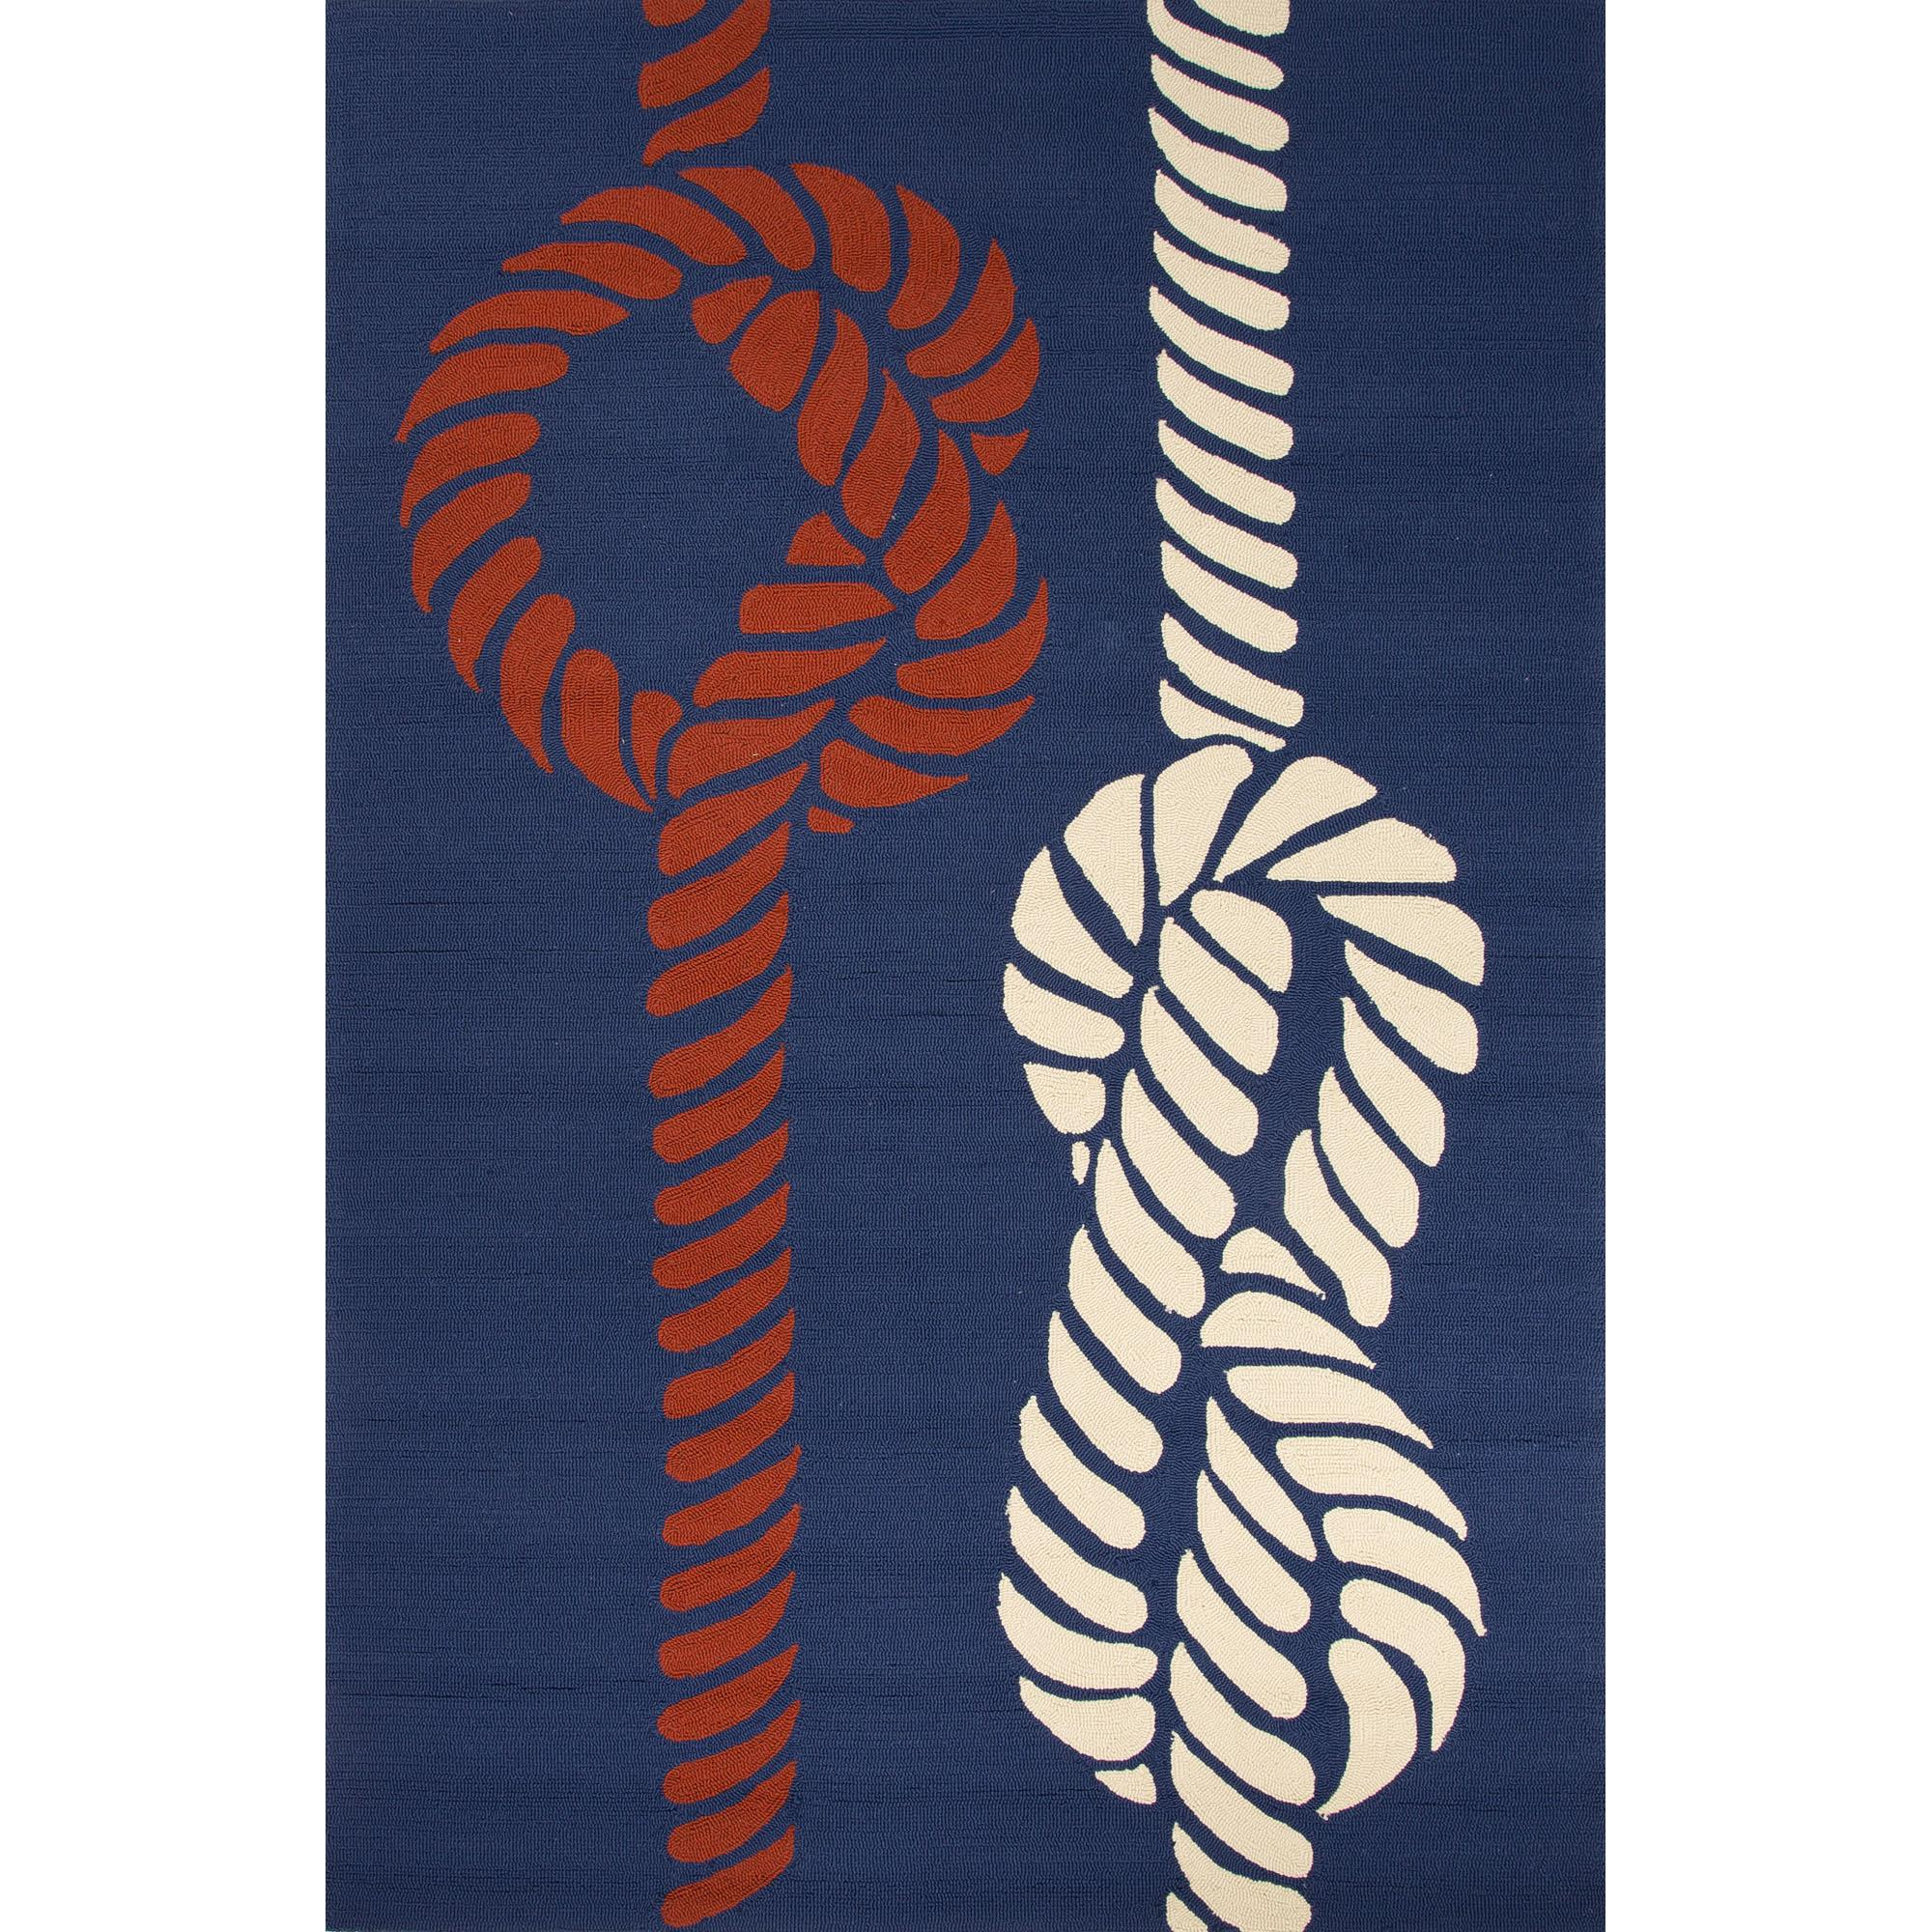 Grant I-o 5 x 7.6 Rug by JAIPUR Living at Malouf Furniture Co.